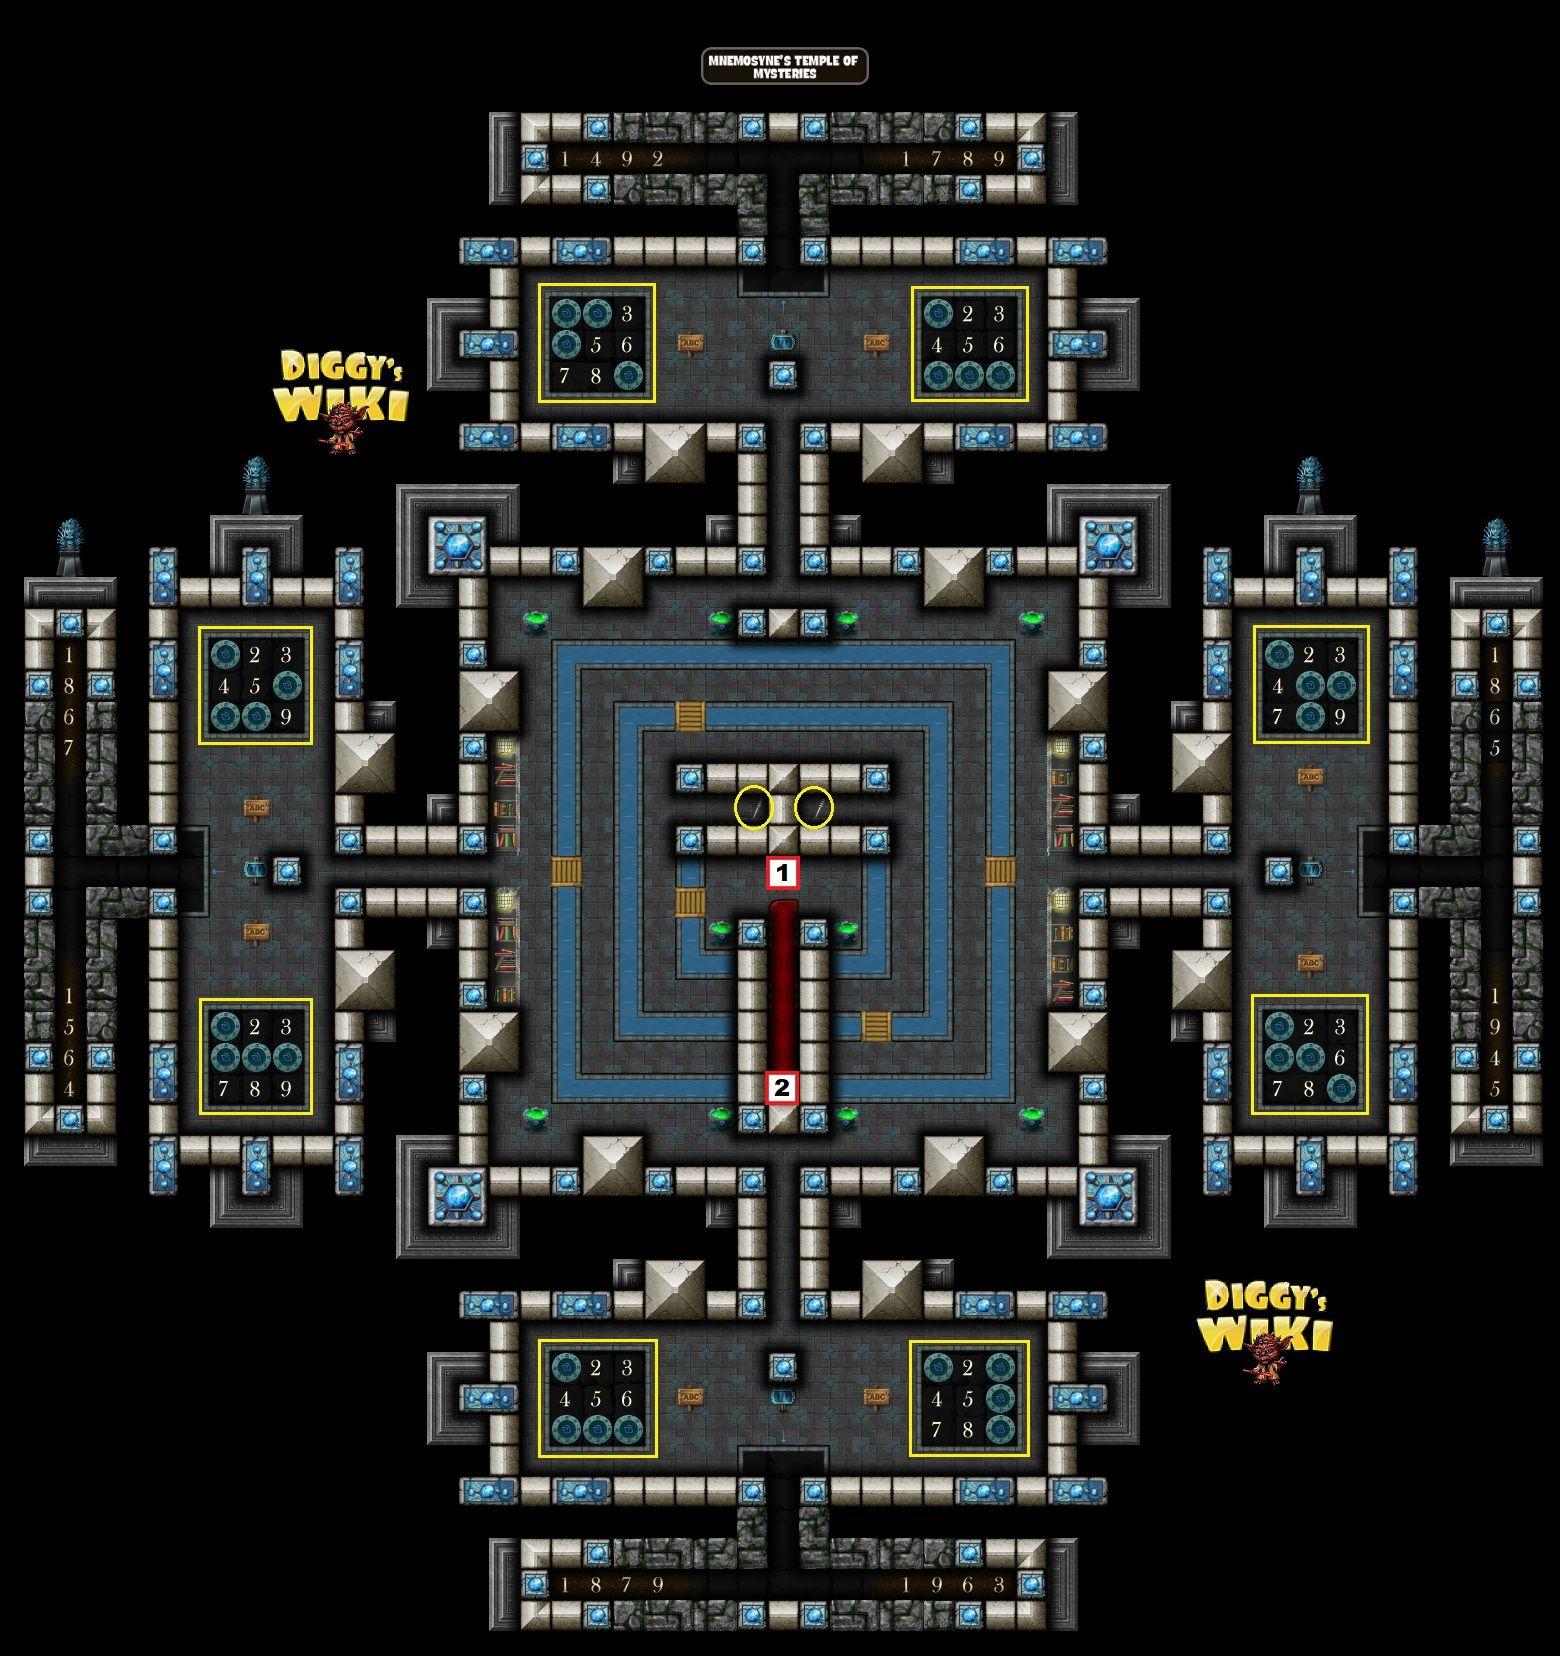 22-2 MNEMOSYNE_S TEMPLE OF MYSTERIES